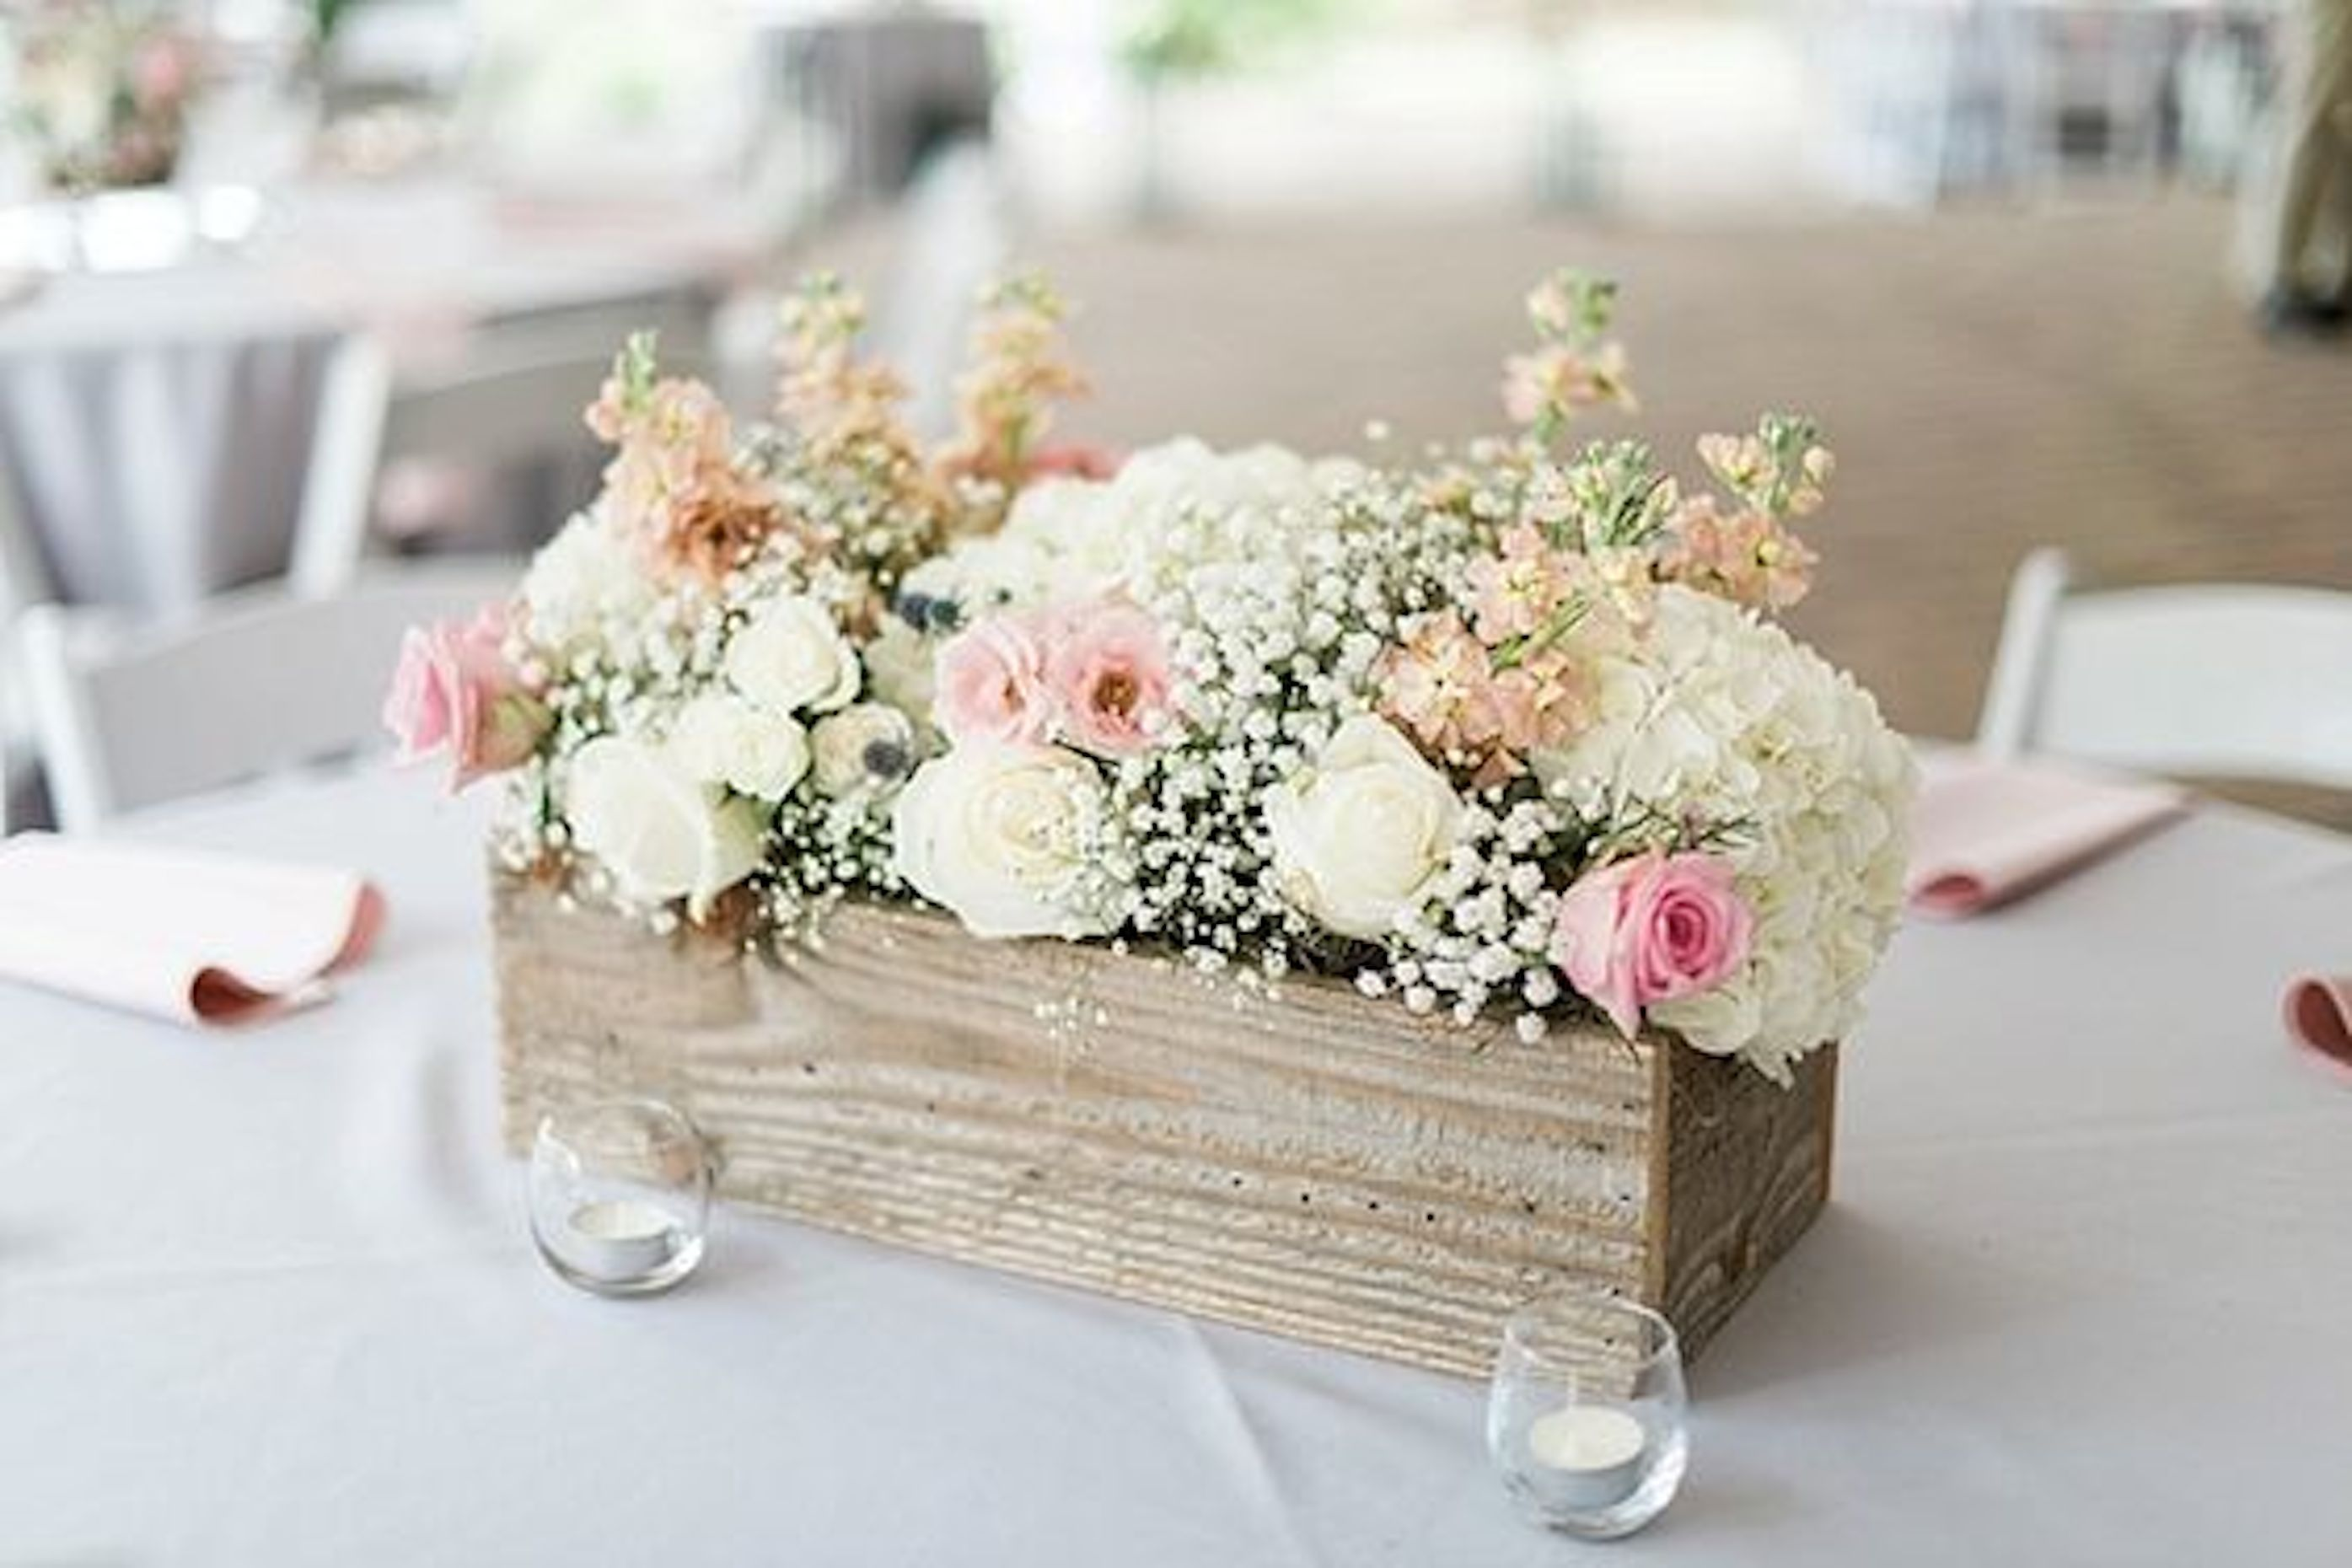 Cut Costs with DIY Centerpieces | Pinterest | Diy centerpieces ...